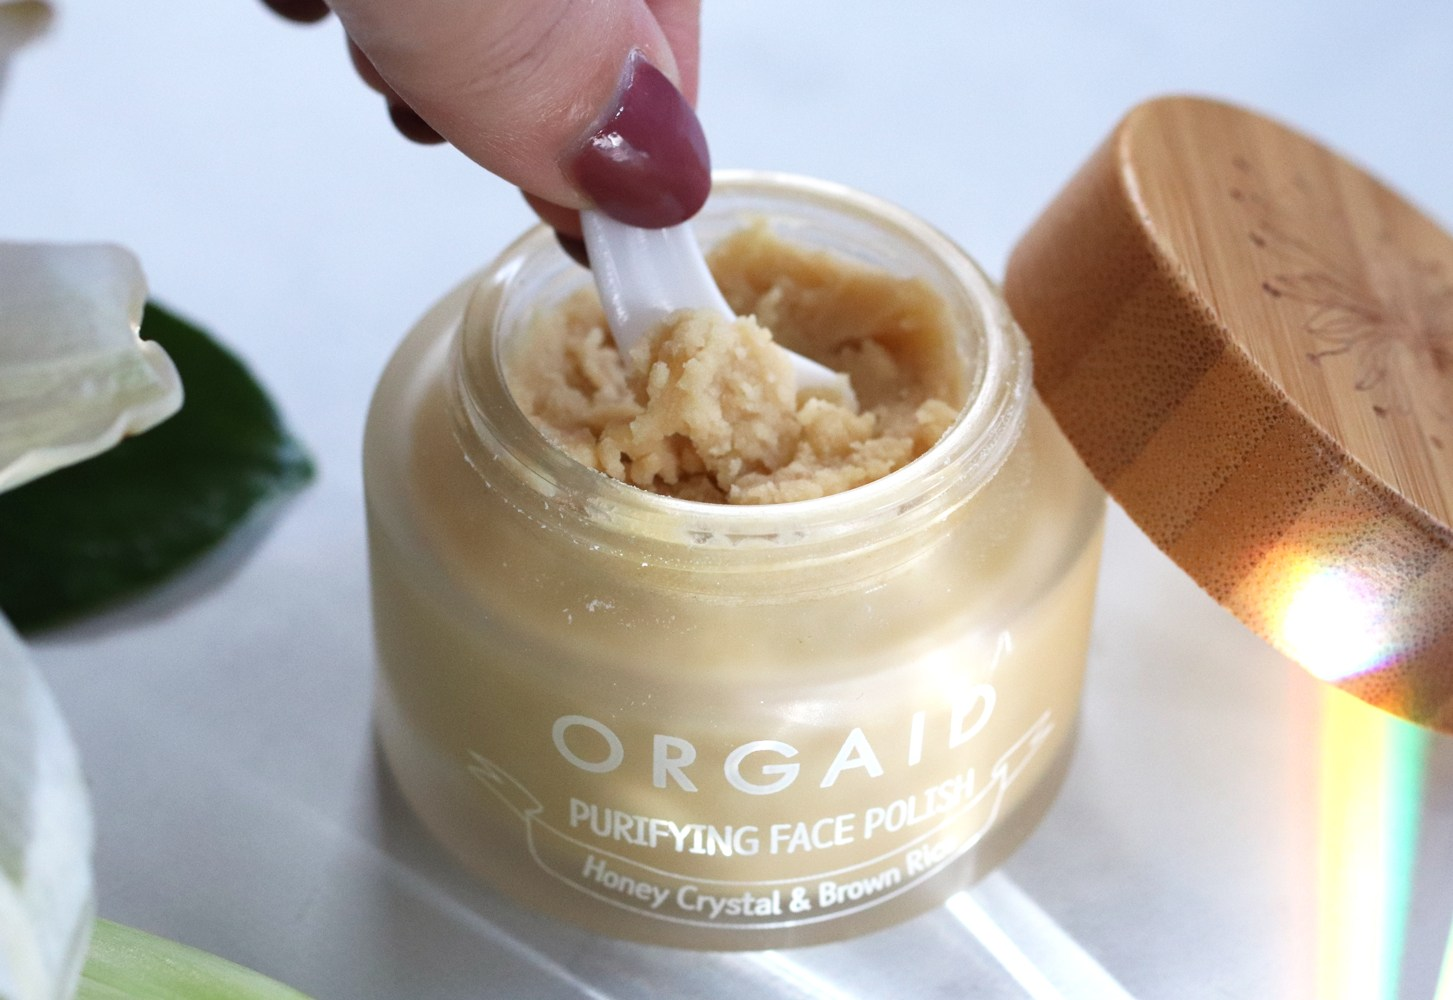 Cruelty free beauty from Cynaglow - ORGAID Purifying Face Polish review